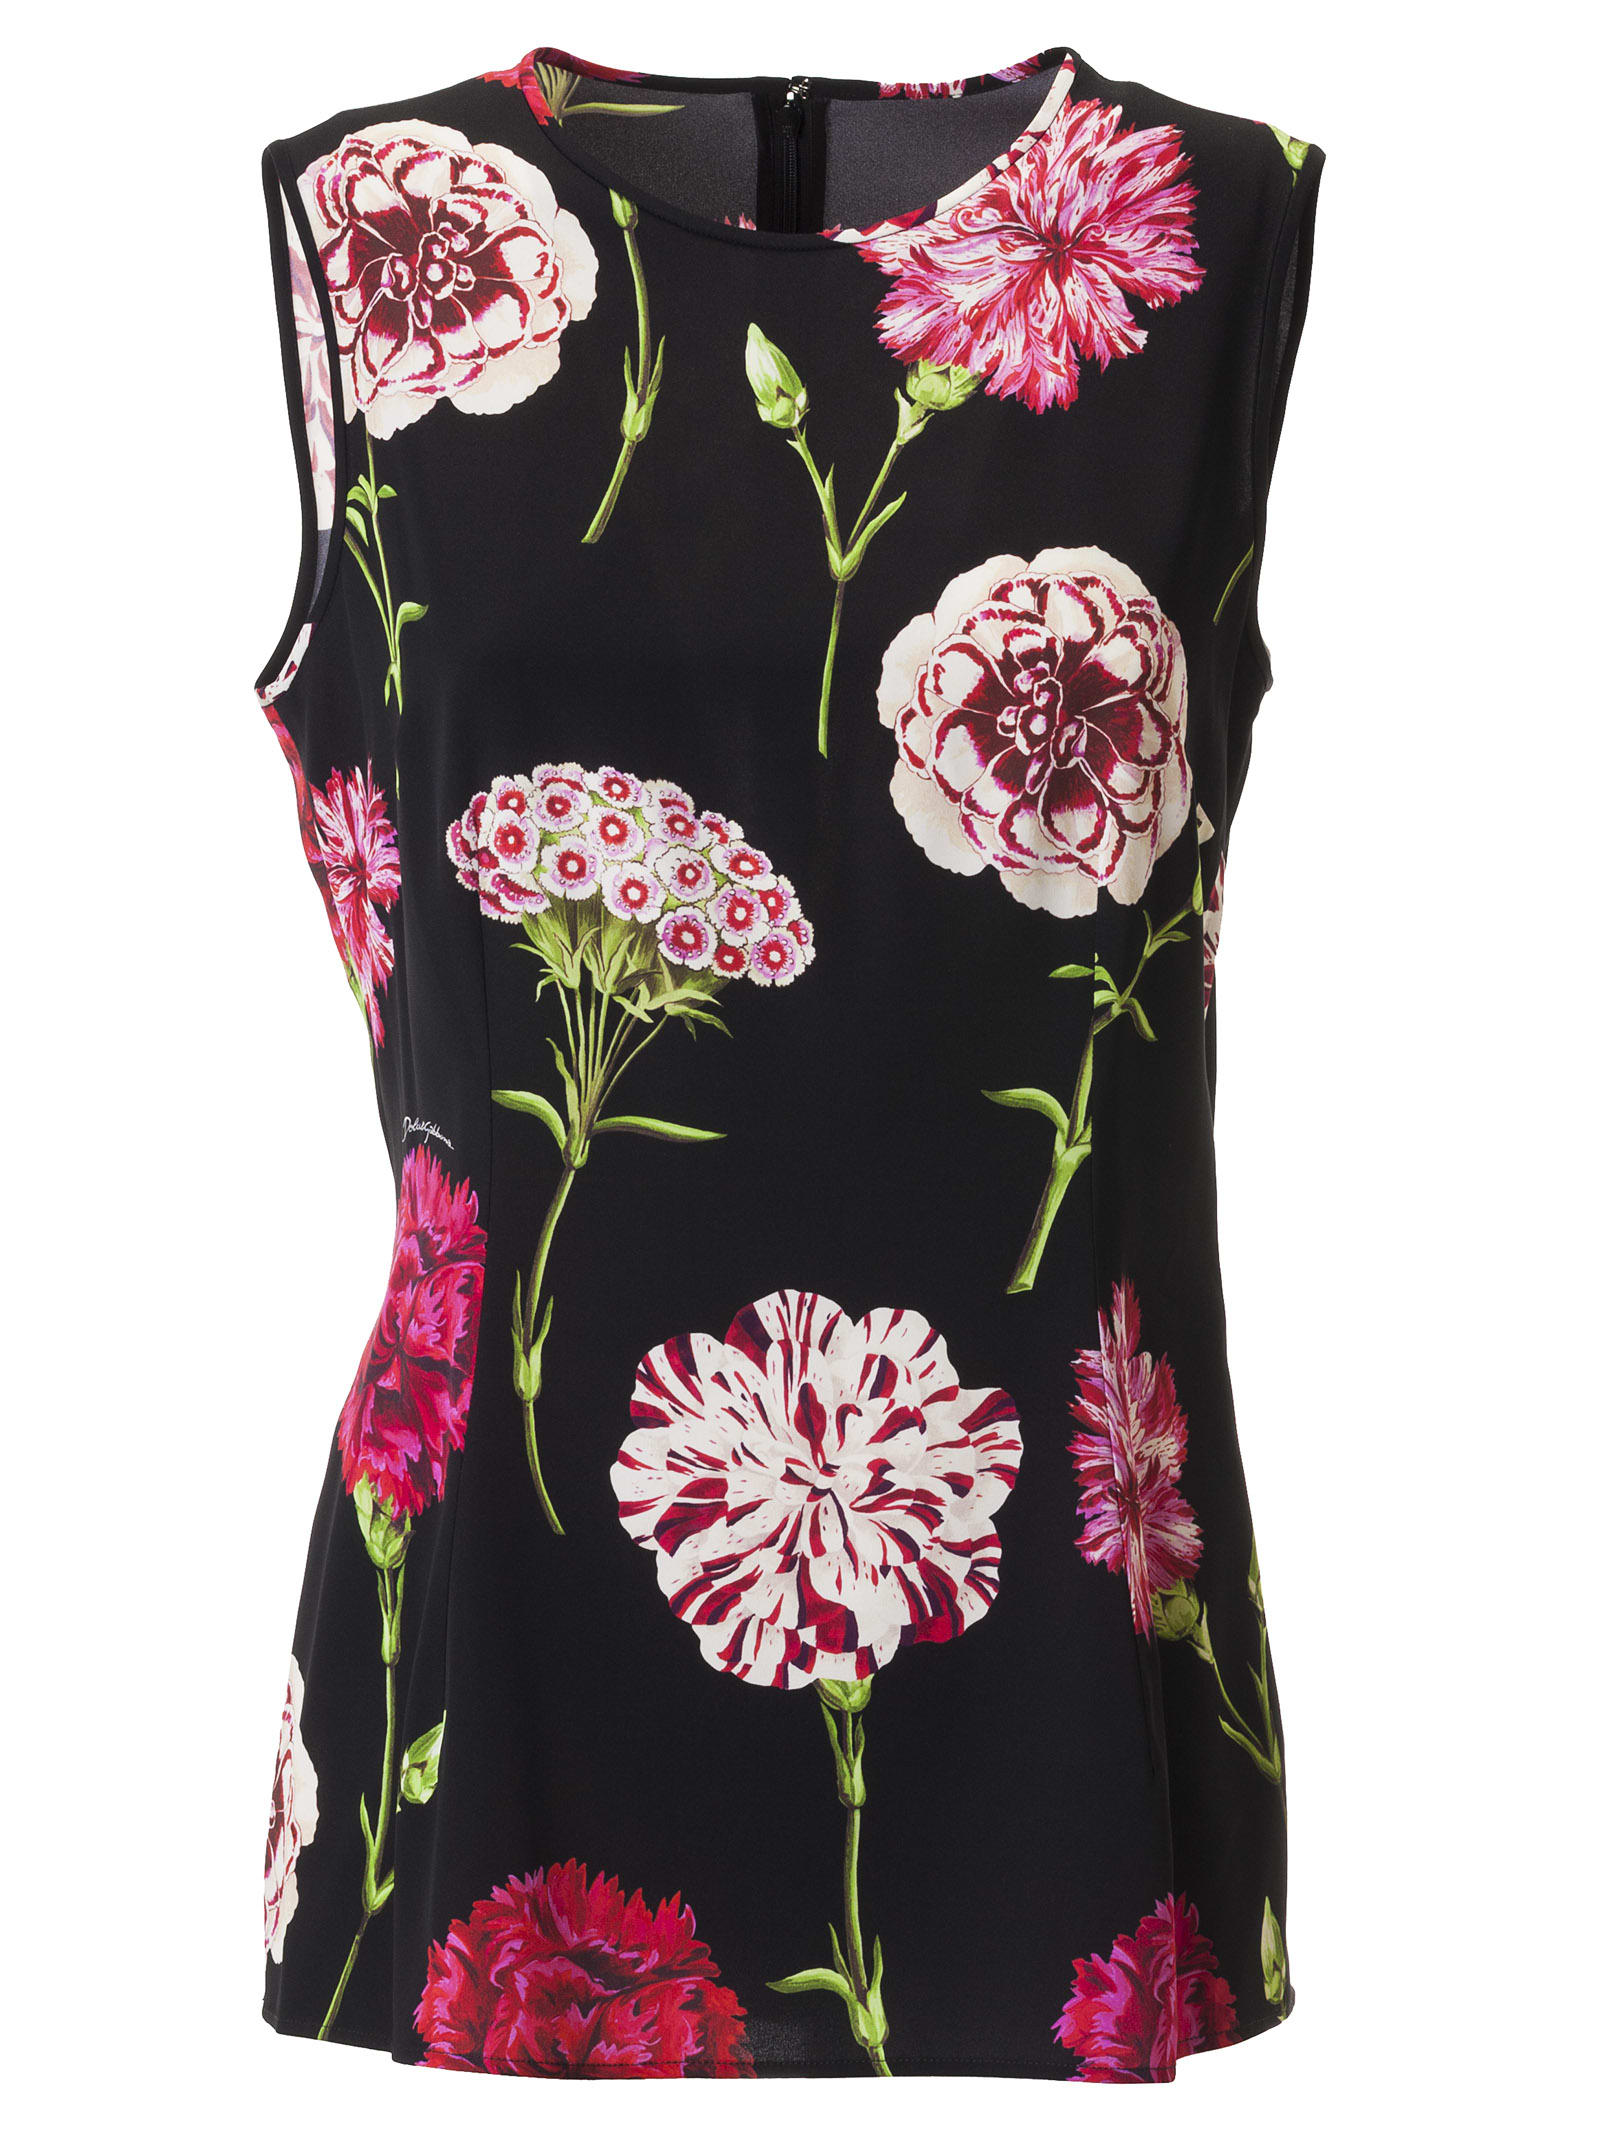 Dolce & Gabbana Floral Print Sleeveless Dress